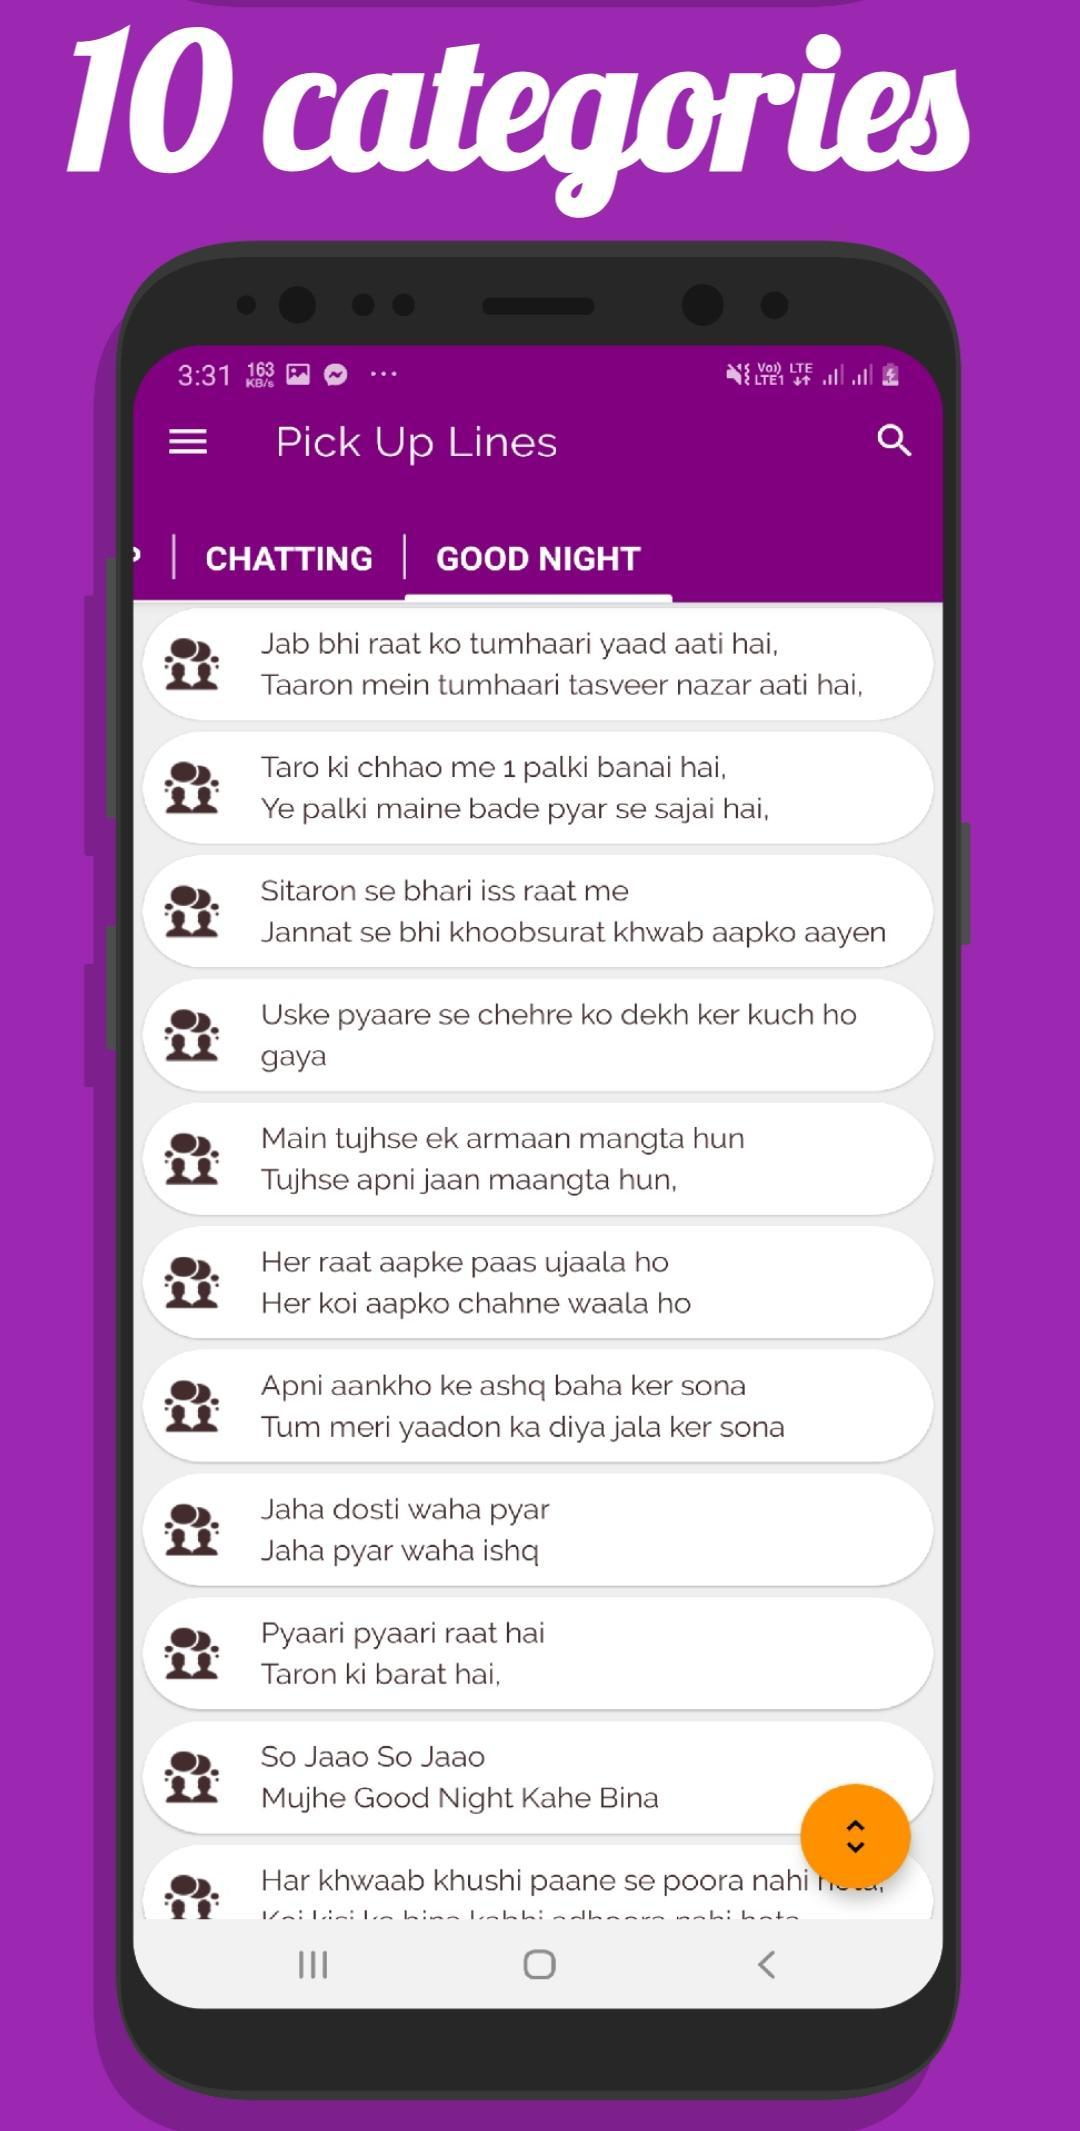 Pick up lines in hindi for Android - APK Download